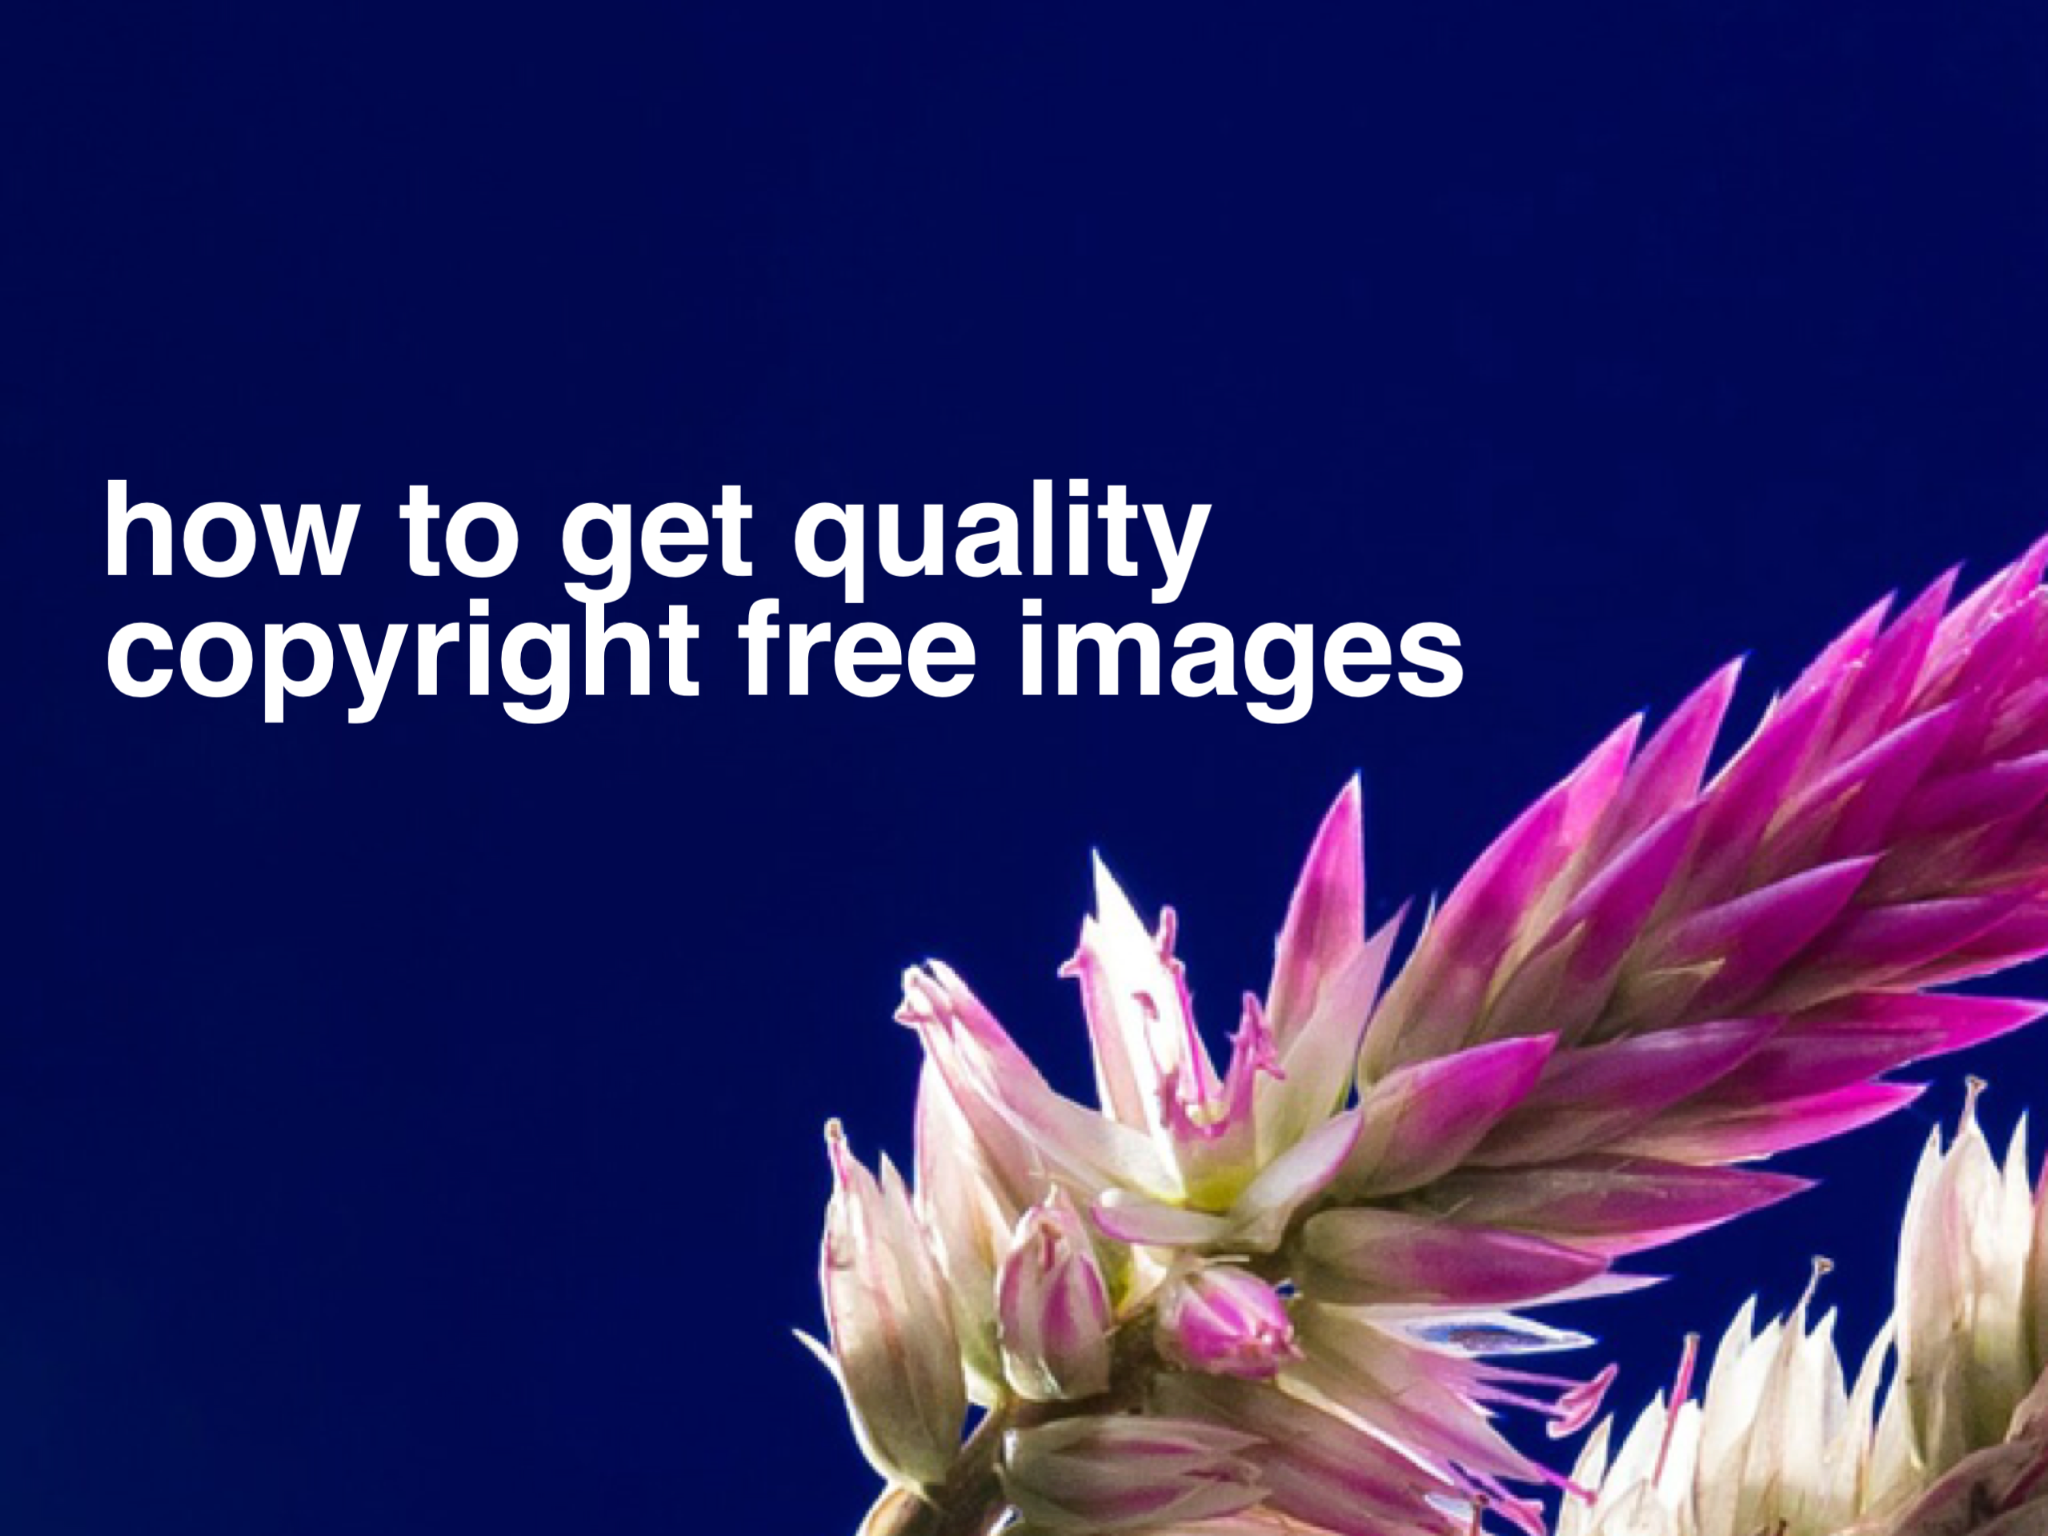 How To Get Quality Creative Commons Reuse And Free Images